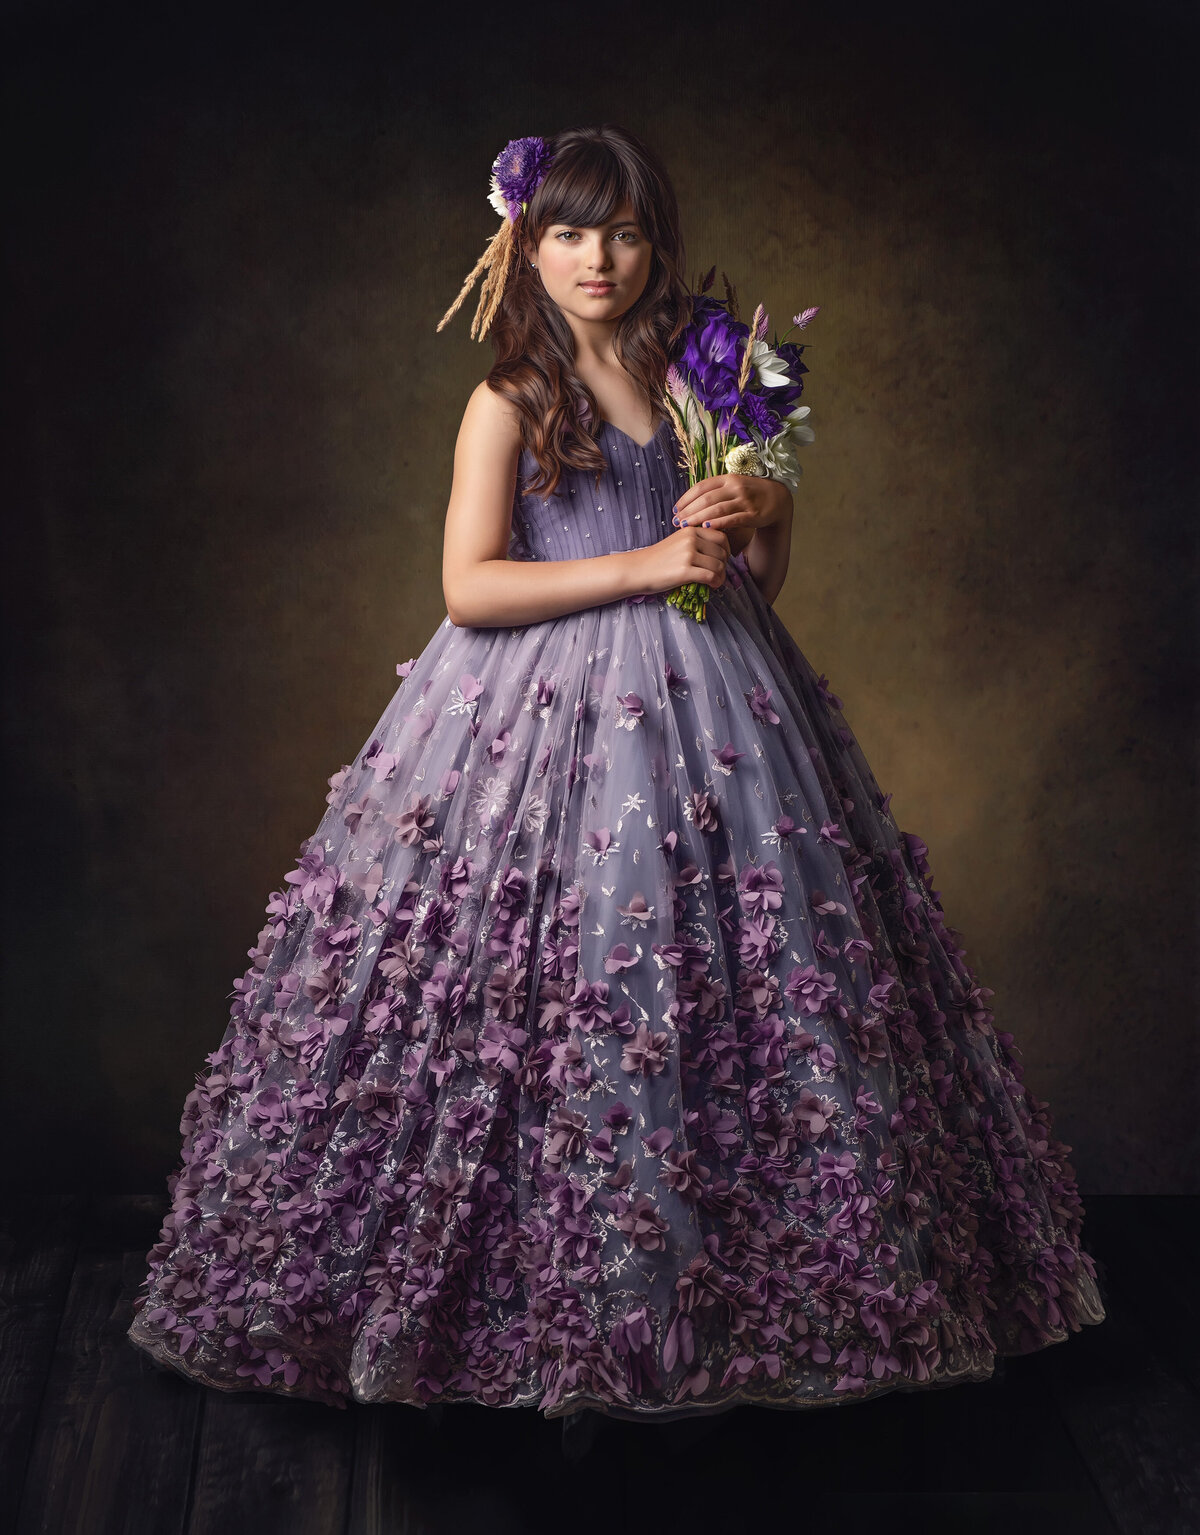 Couture-child-photographer-Skagit